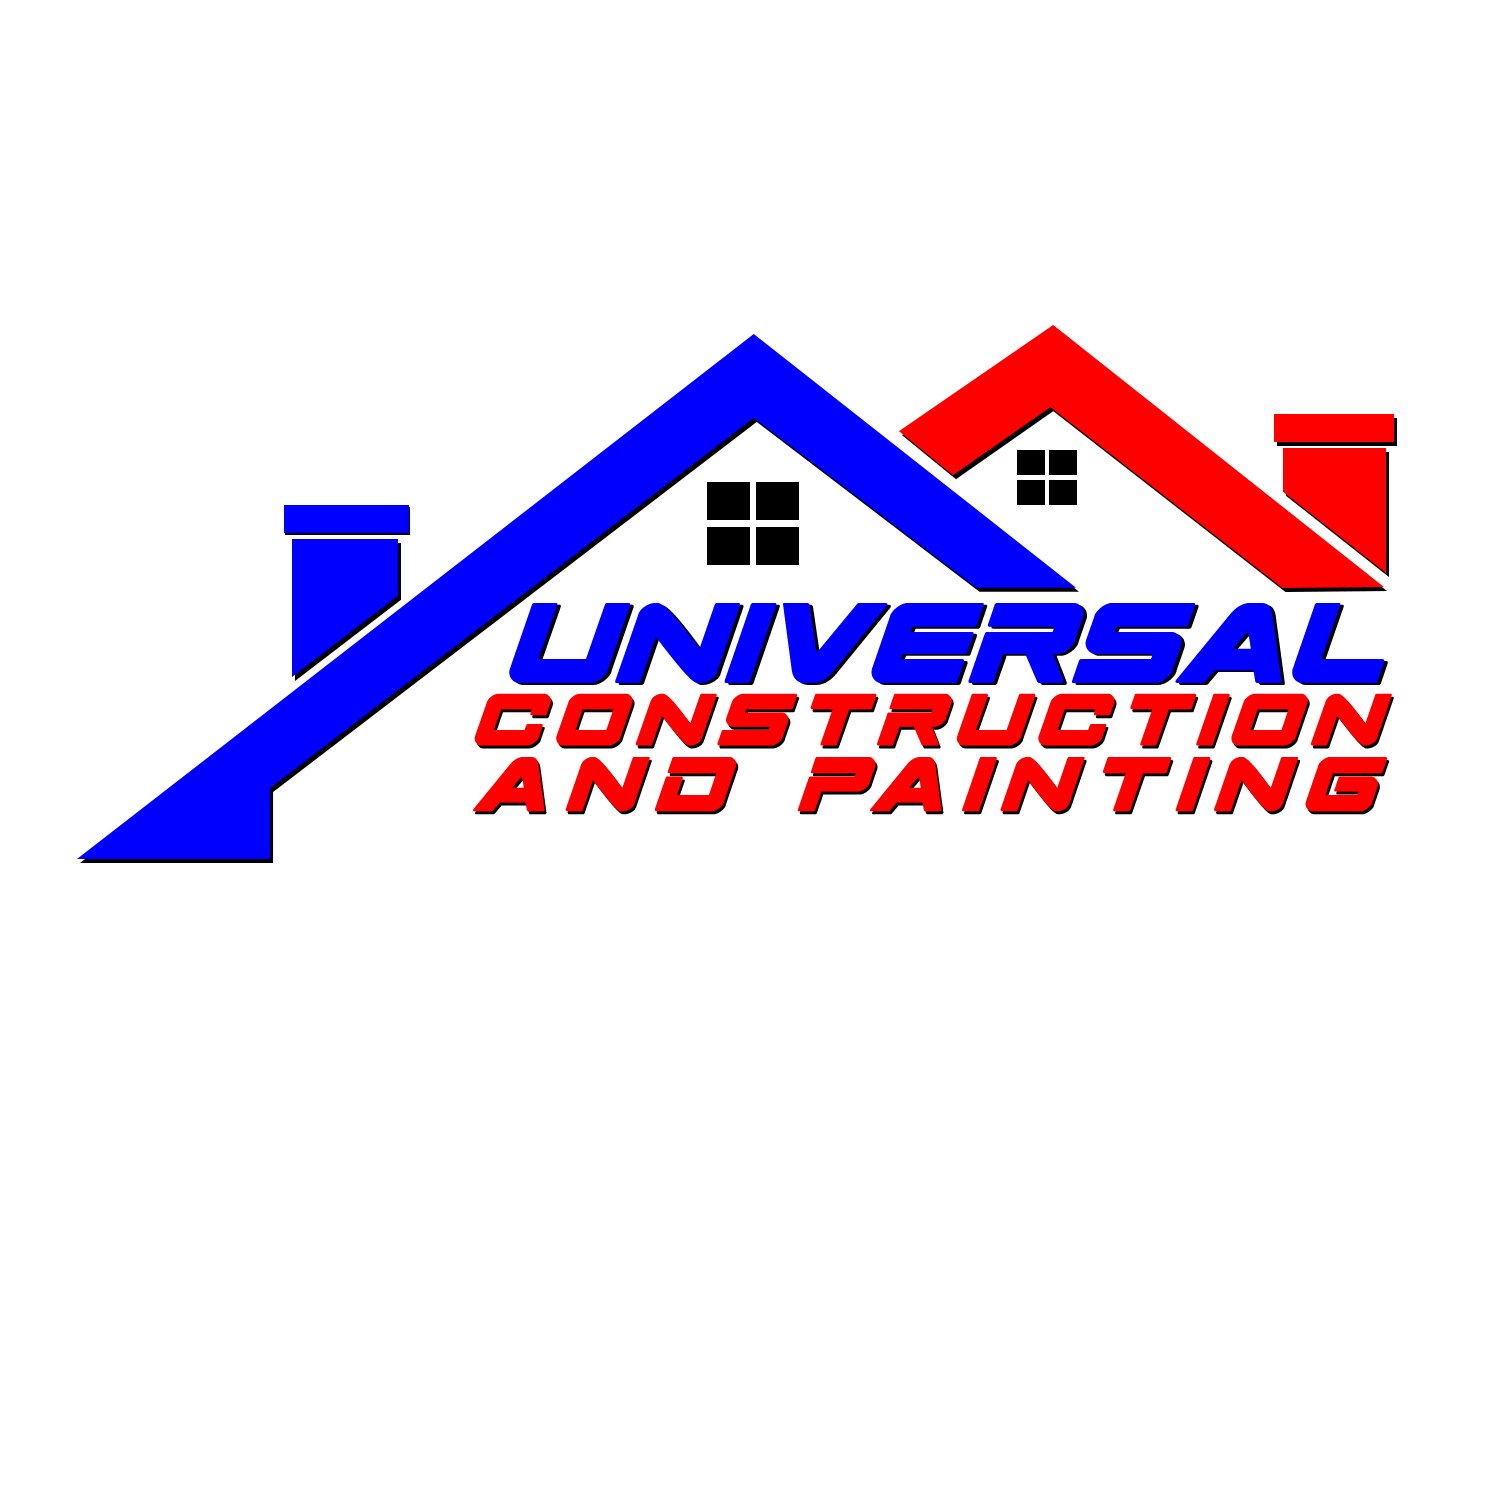 Universal Construction and Painting